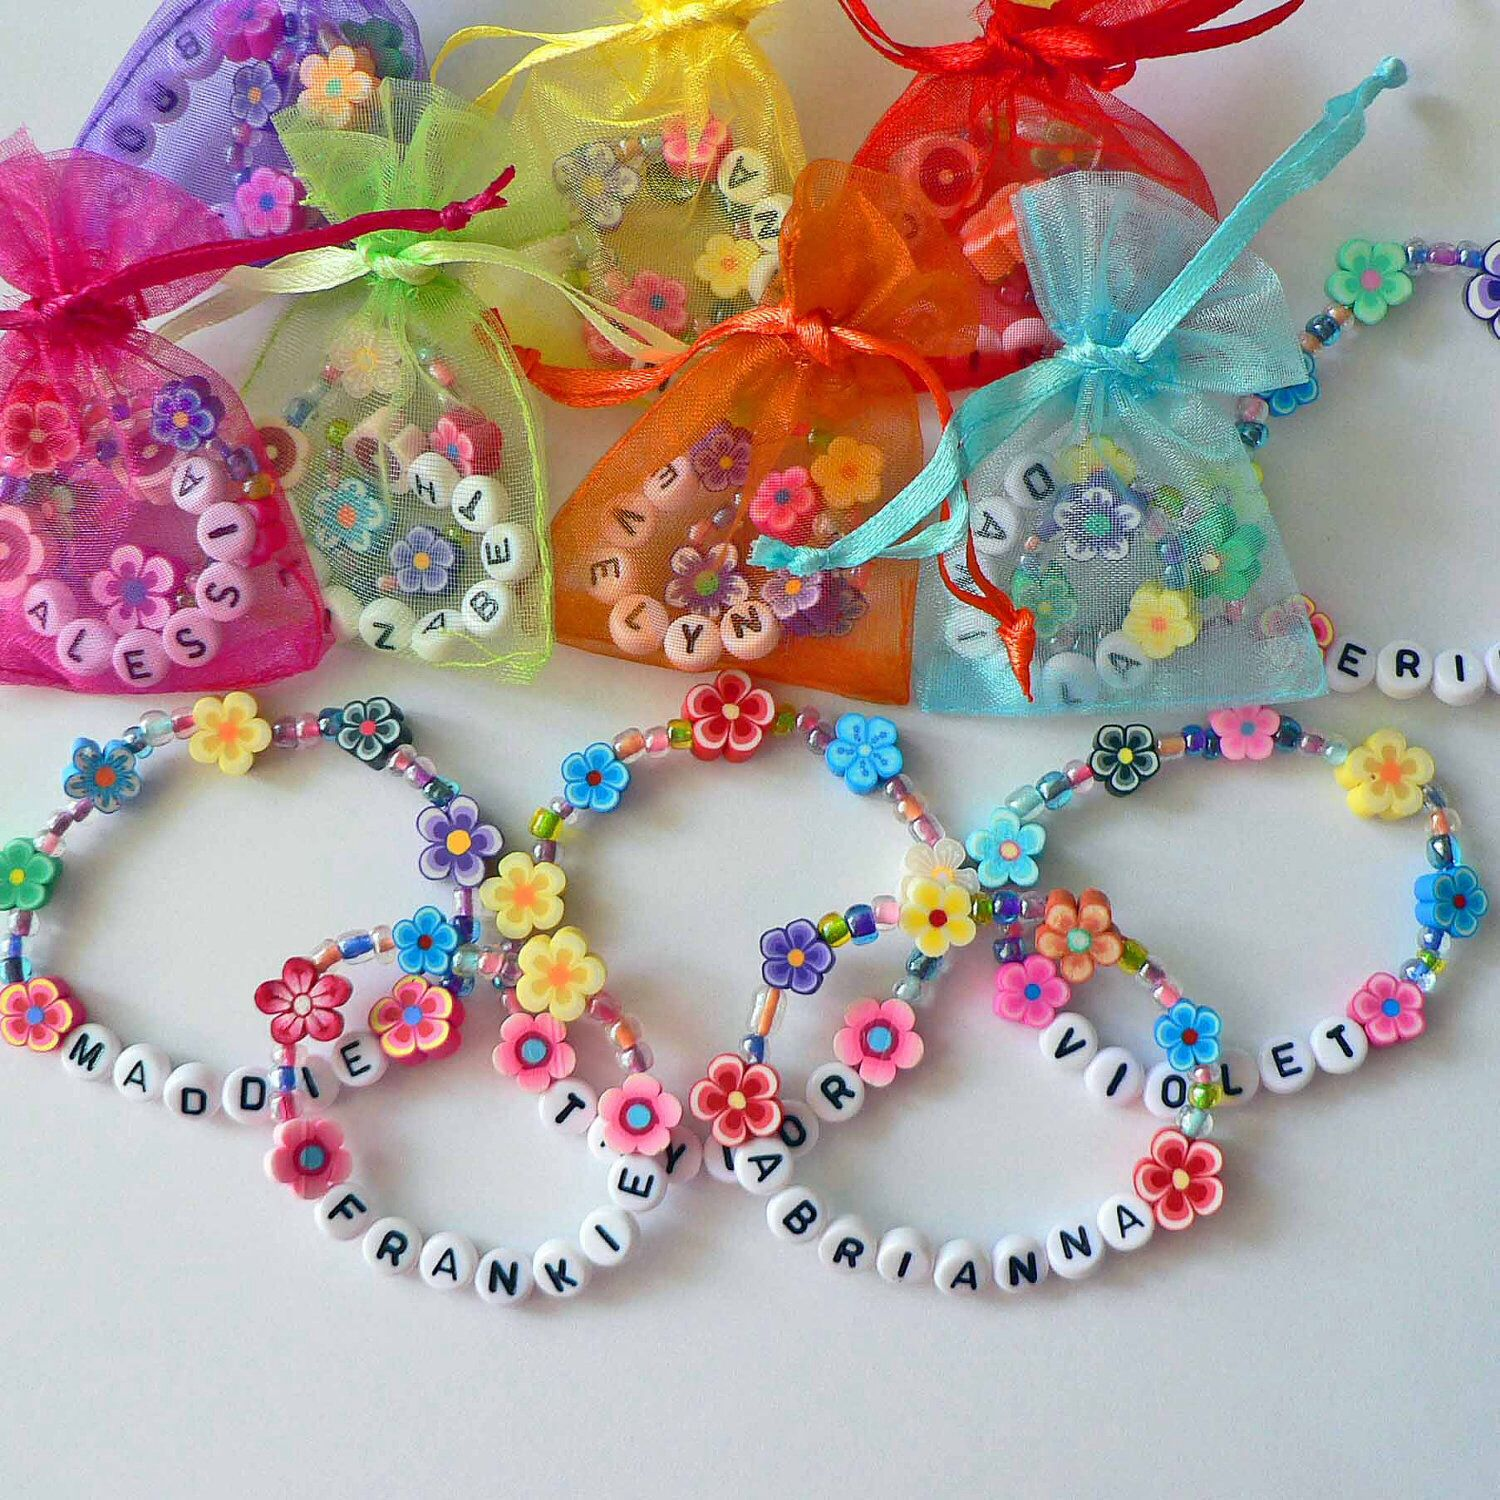 Goody bag bracelets with images luau party favors